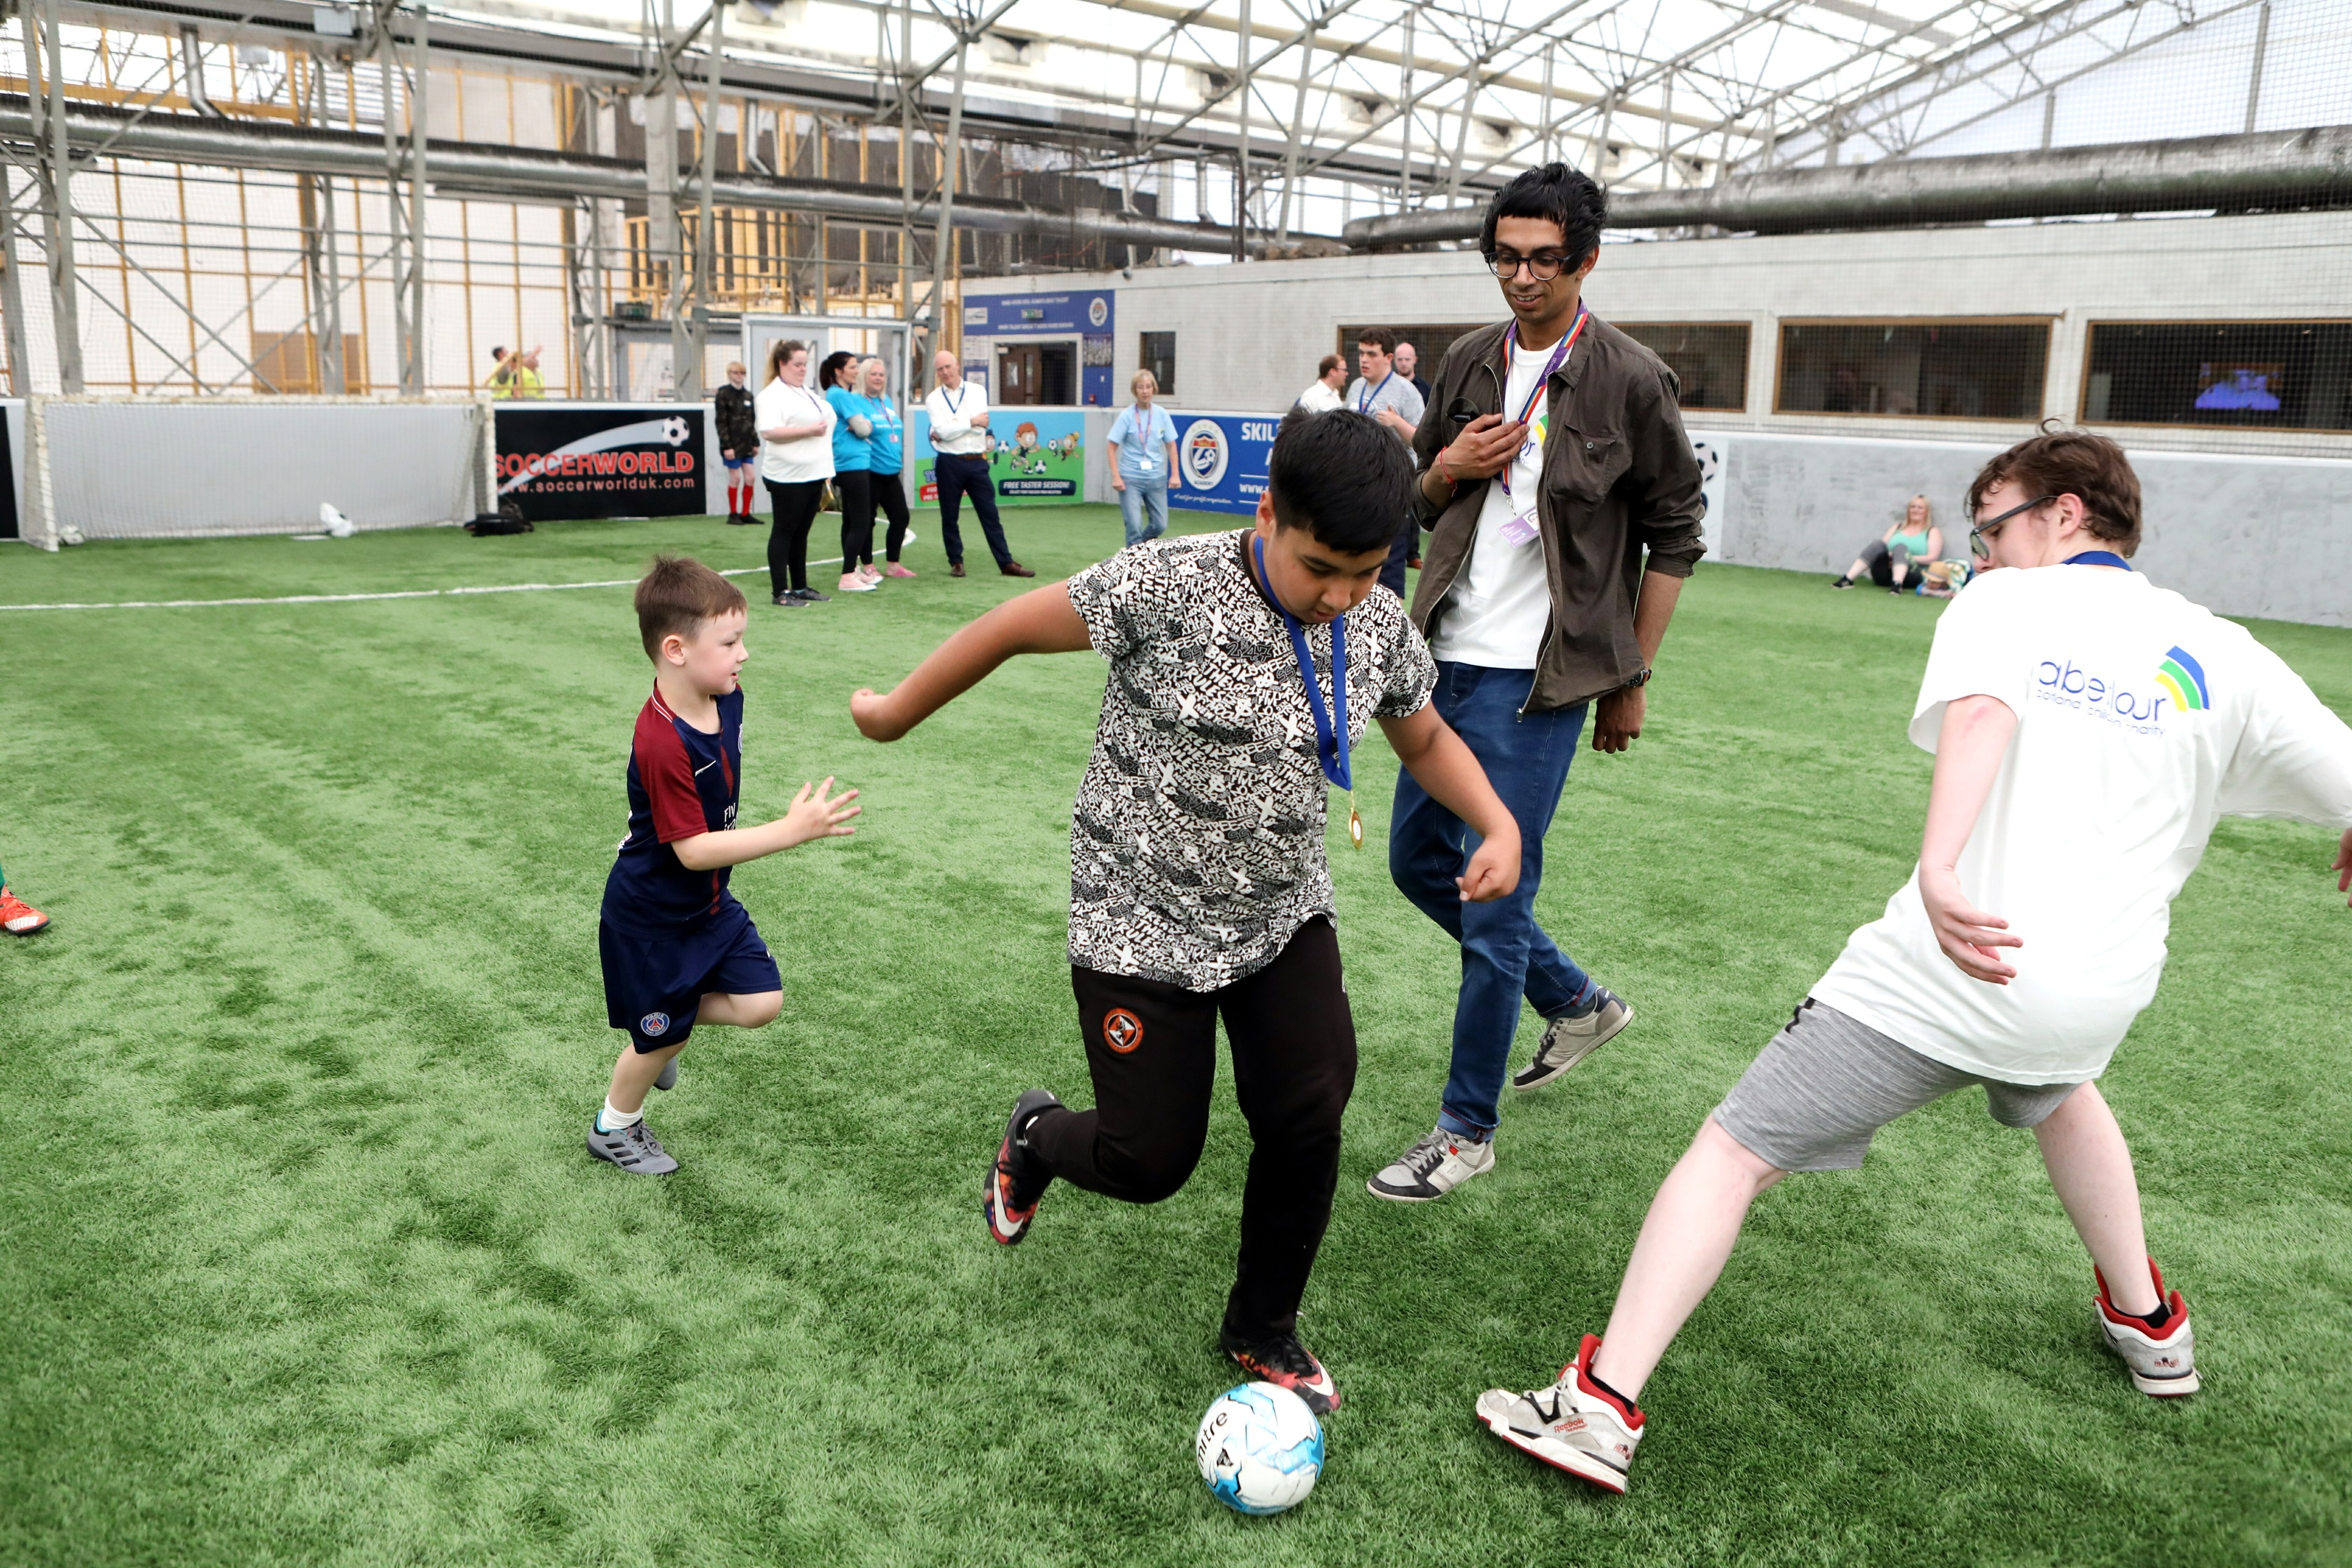 The visually-impaired football match took place at SoccerWorld Dundee.